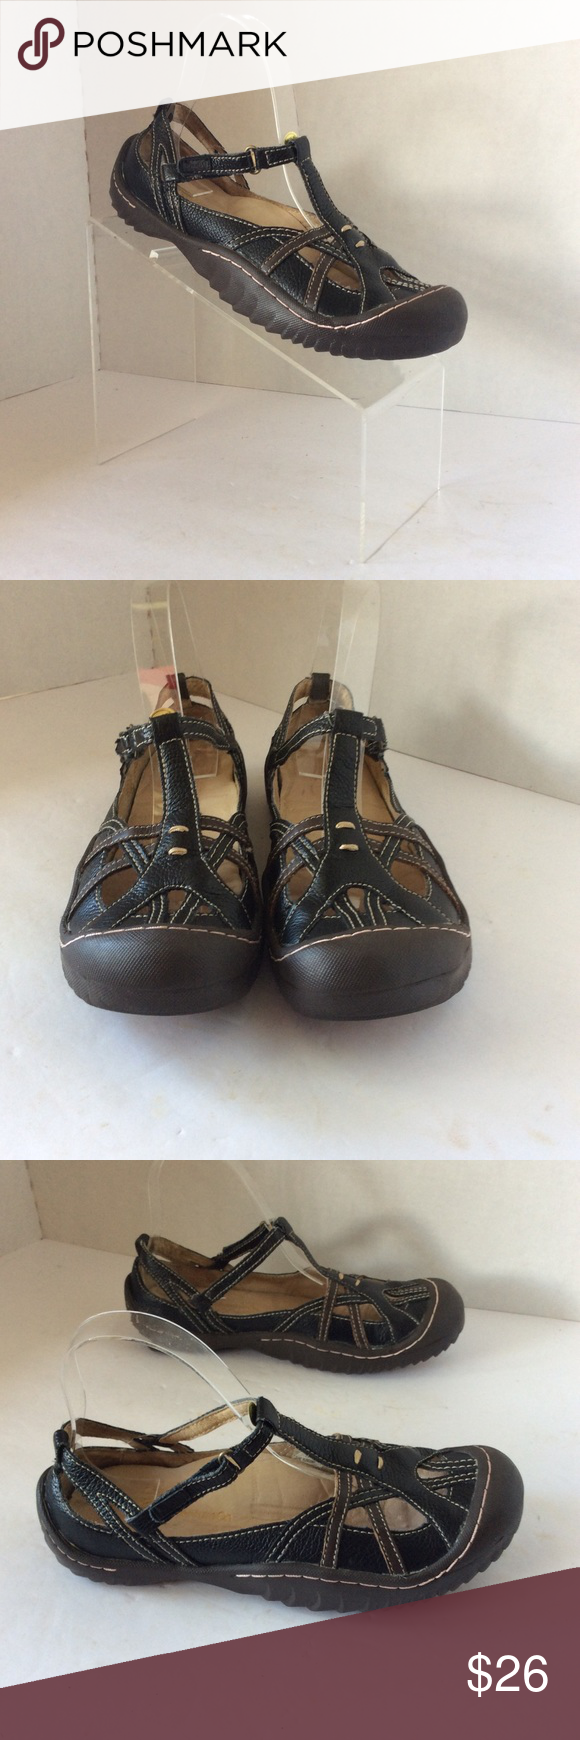 J 41 Jeep Sole Traction Size 7 5 Dune Leather J 41 Shoes Leather Women Dune Shoes